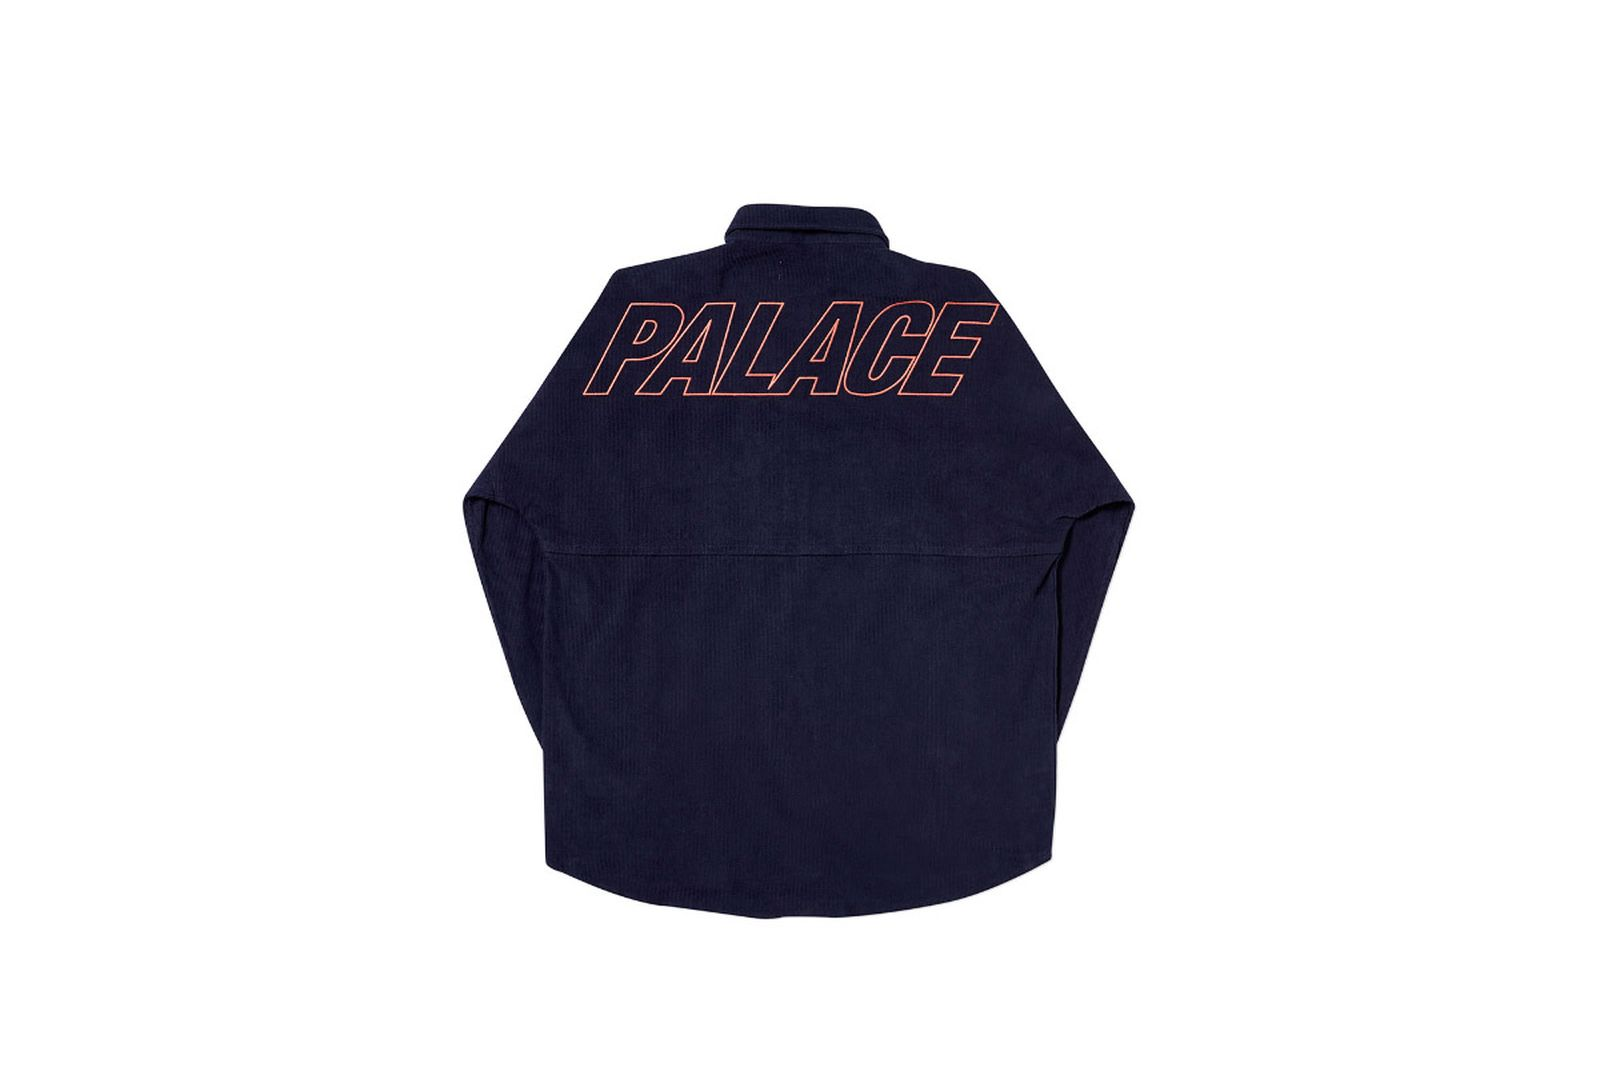 Palace 2019 Autumn Shirt Drop Cord navy front fw19